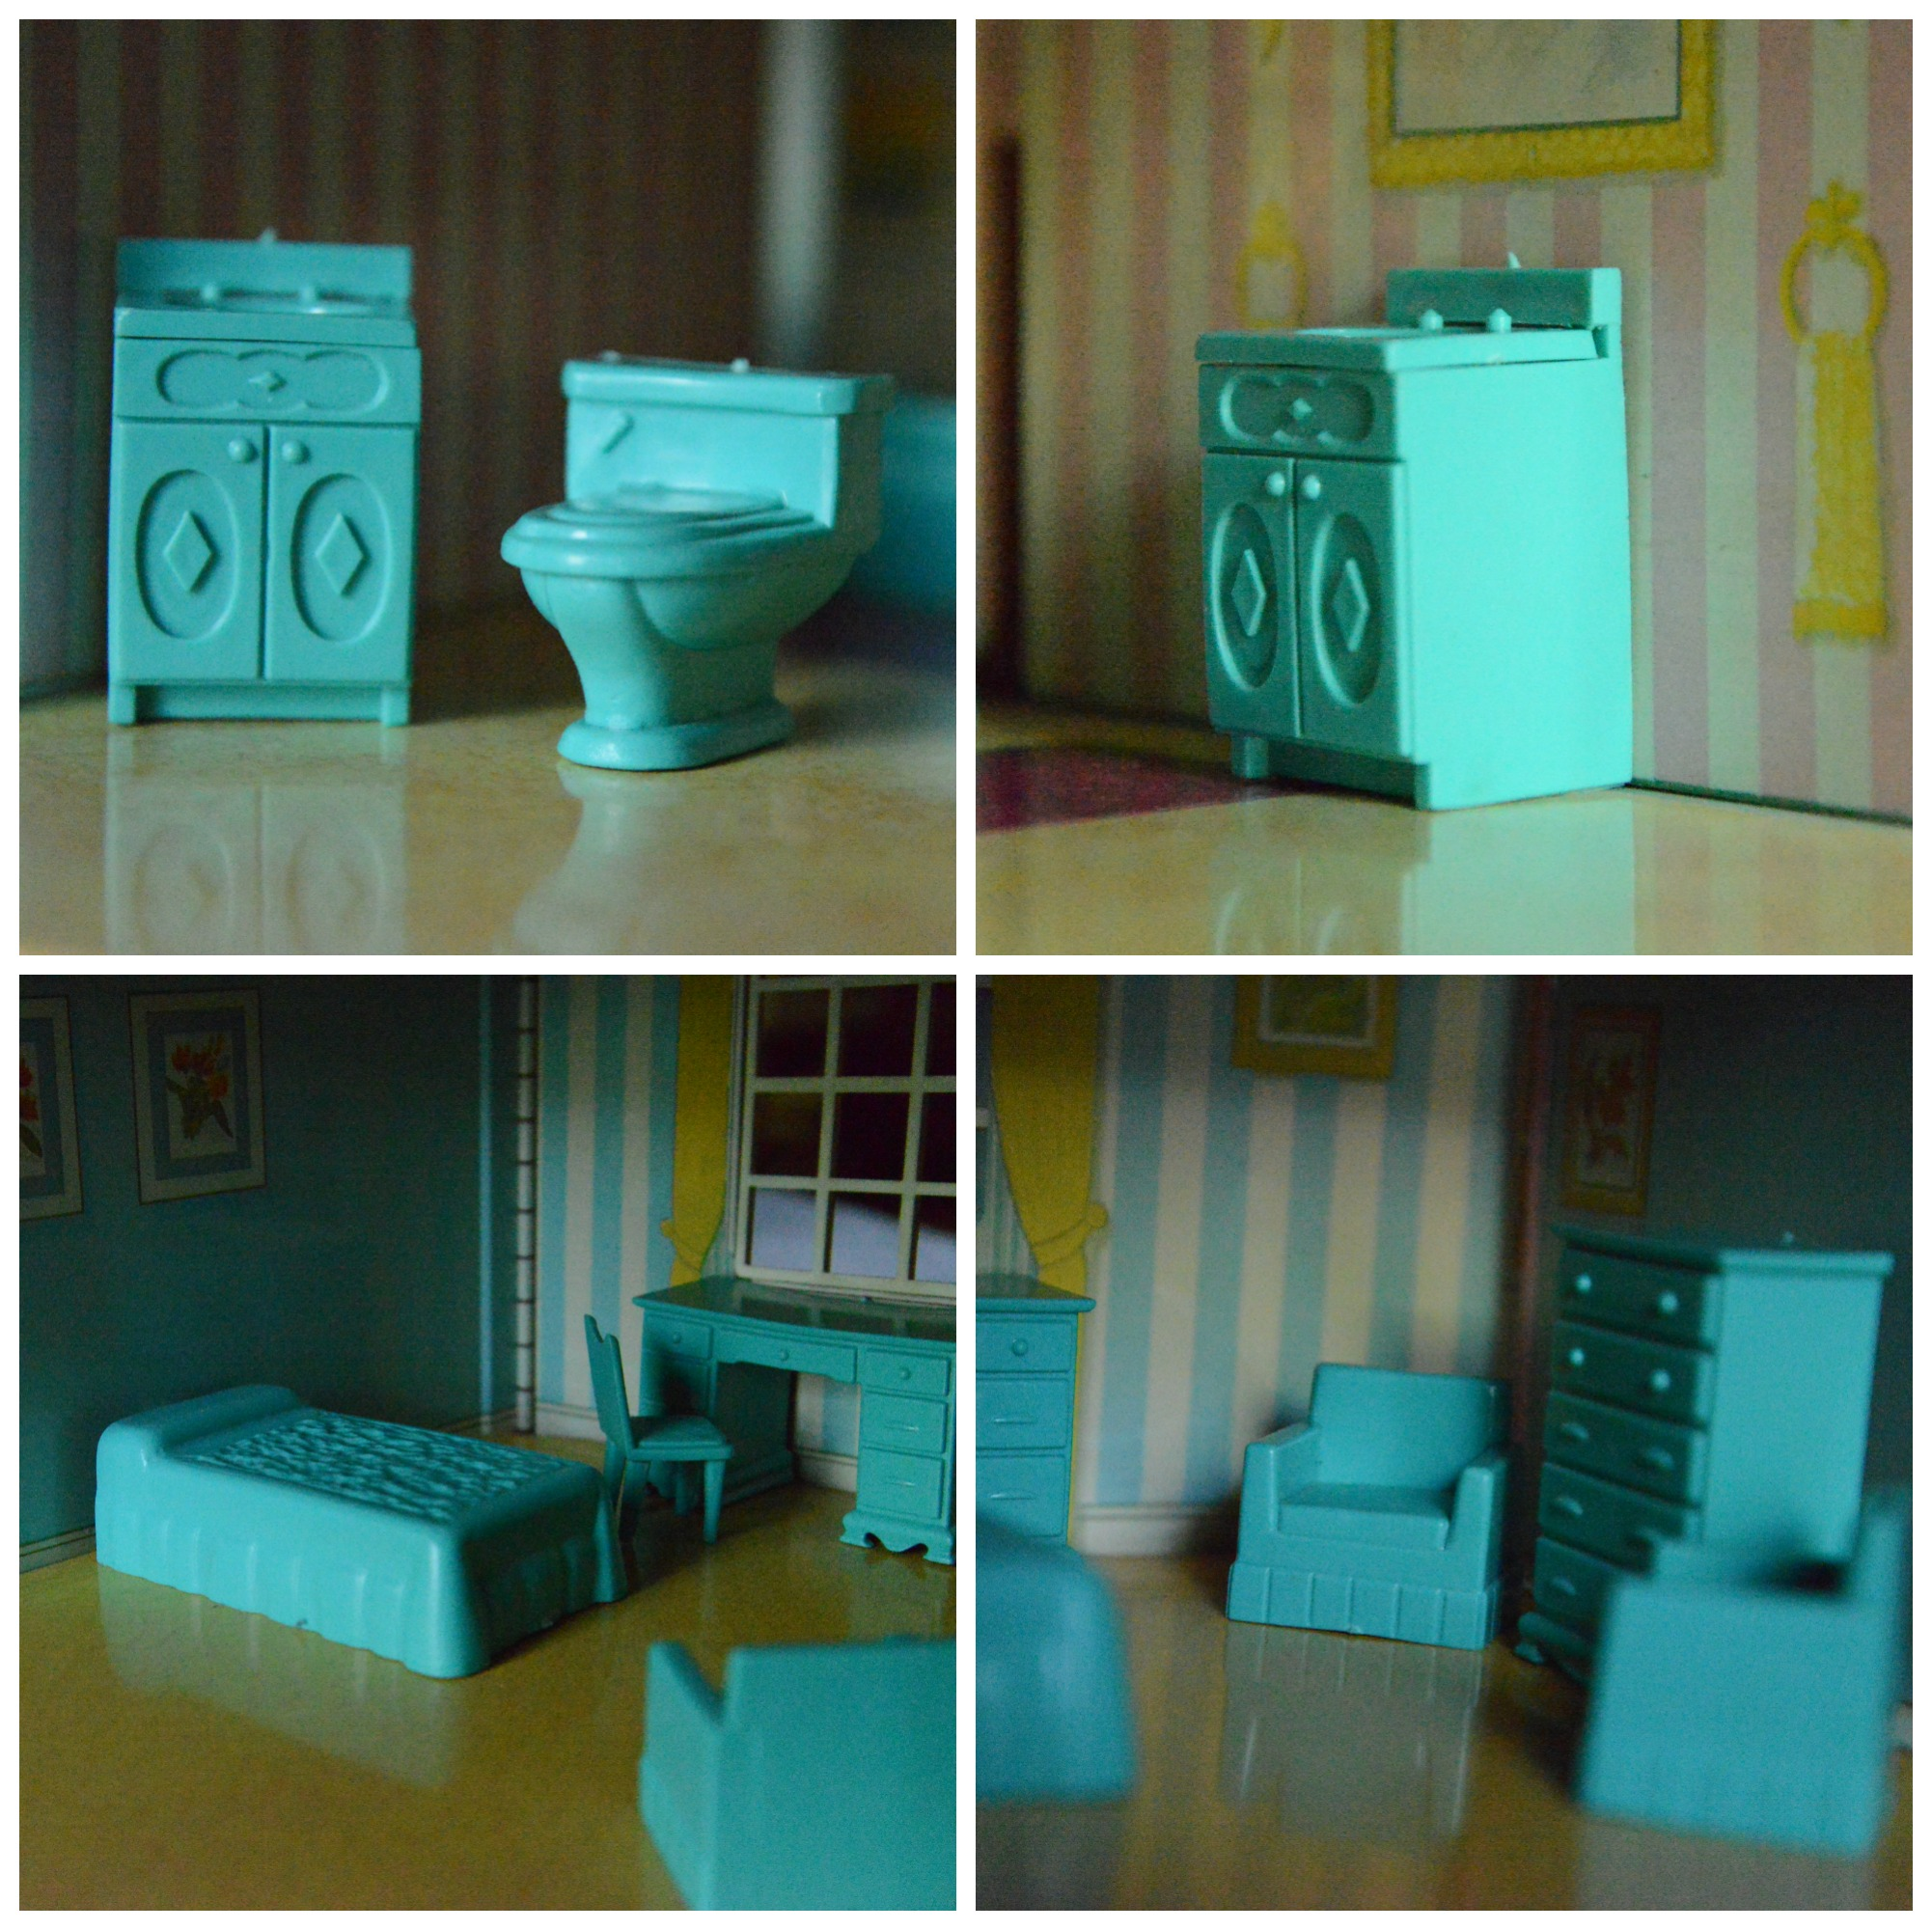 Tin Doll House Furniture Bathroom Toilet Sink in Aqua Blue